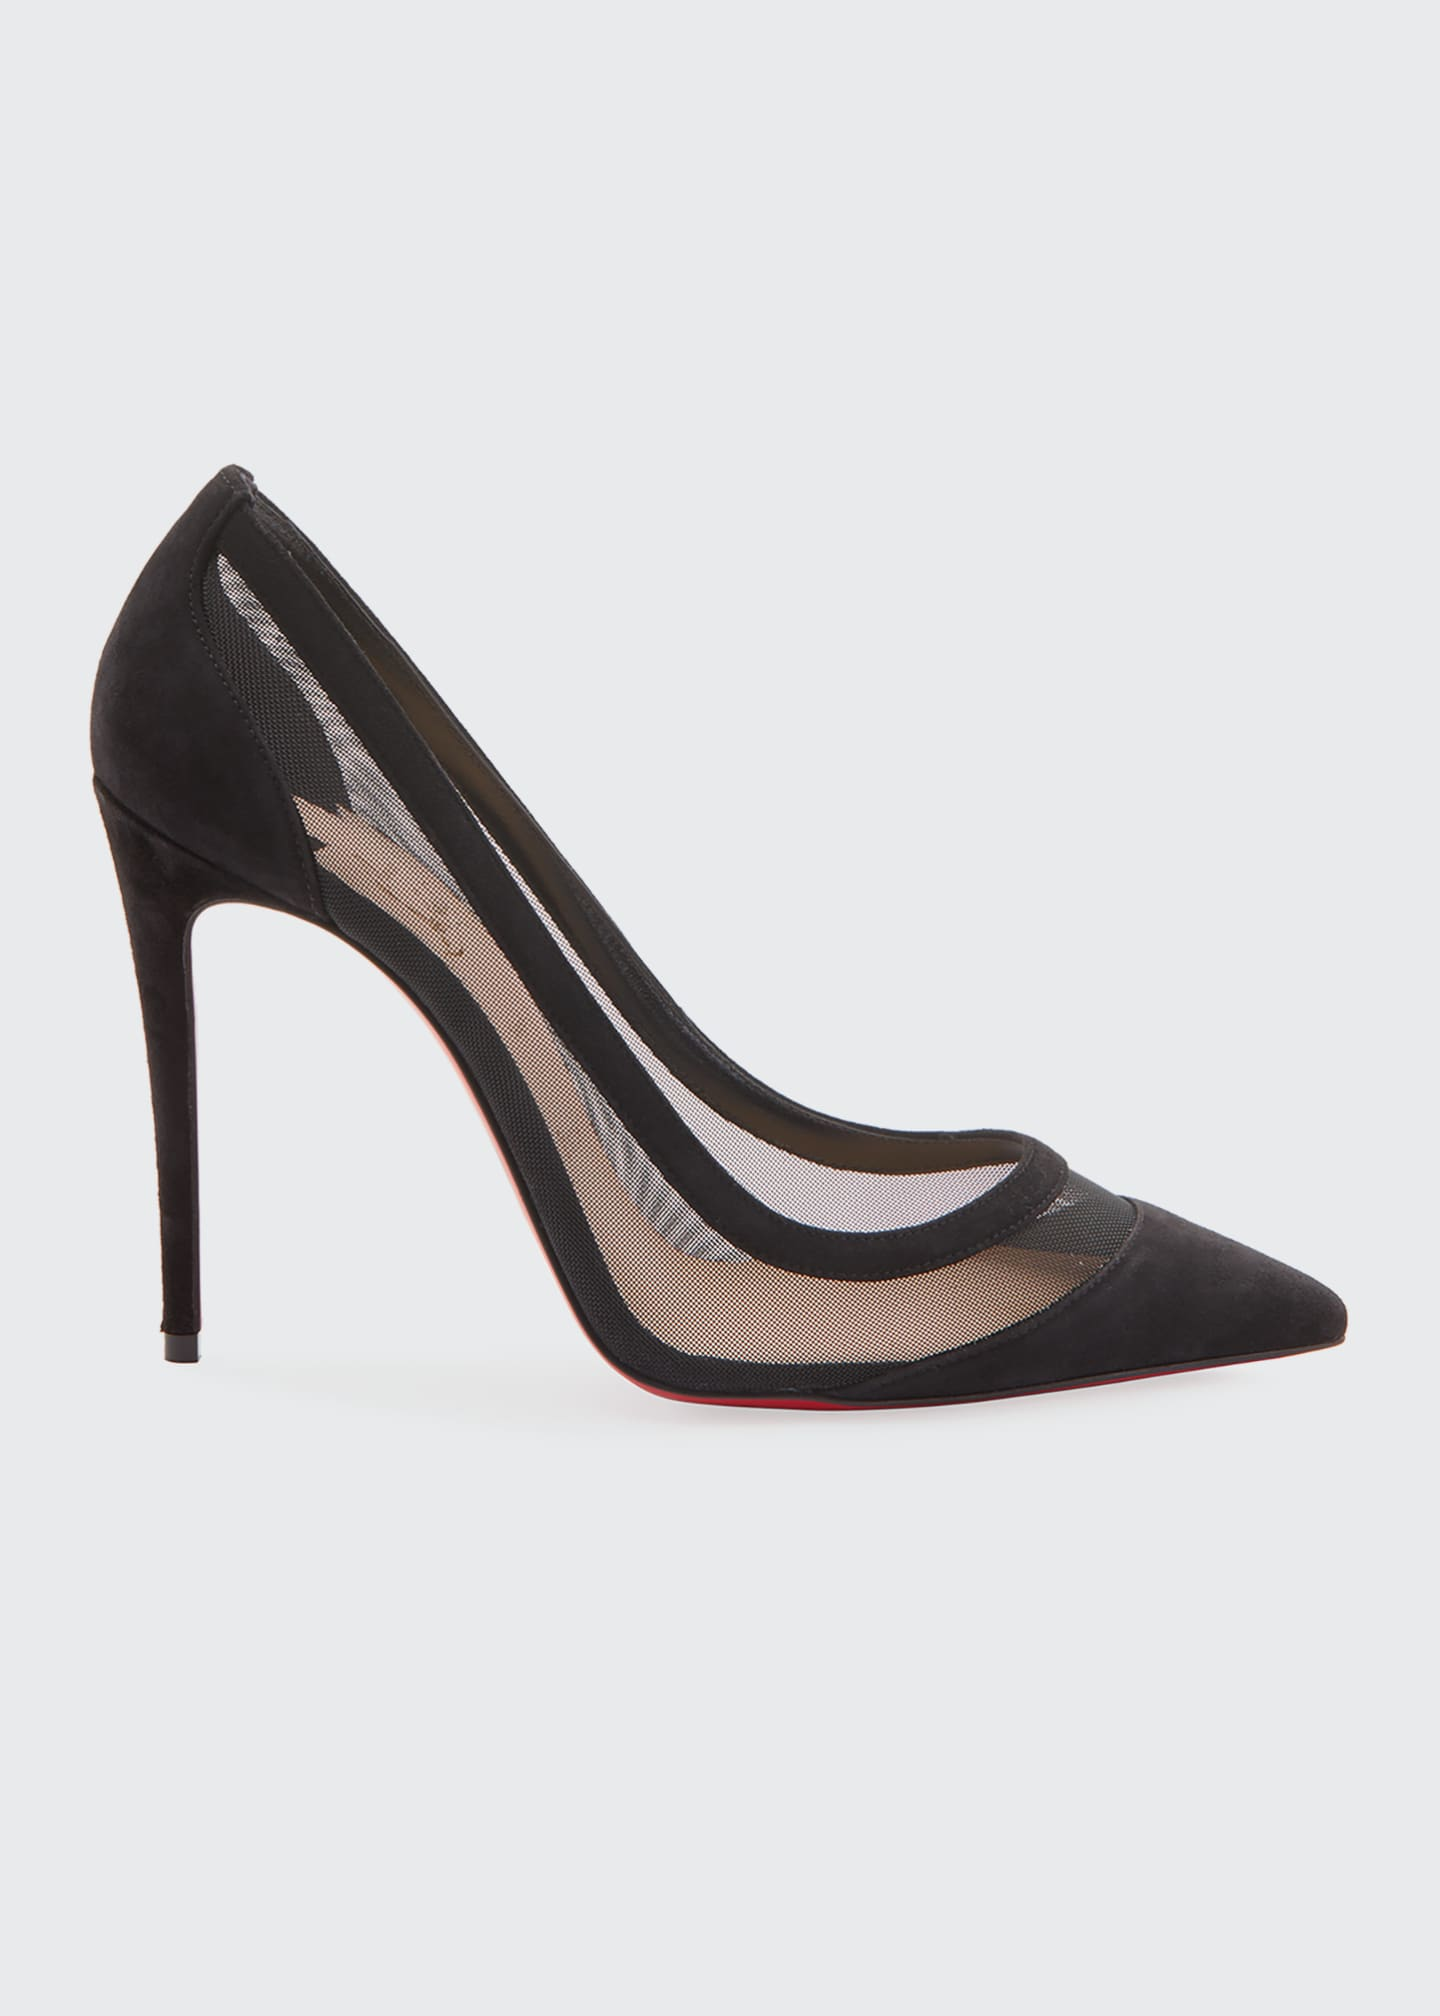 Image 1 of 2: Galativi Suede and Mesh Red Sole Pumps